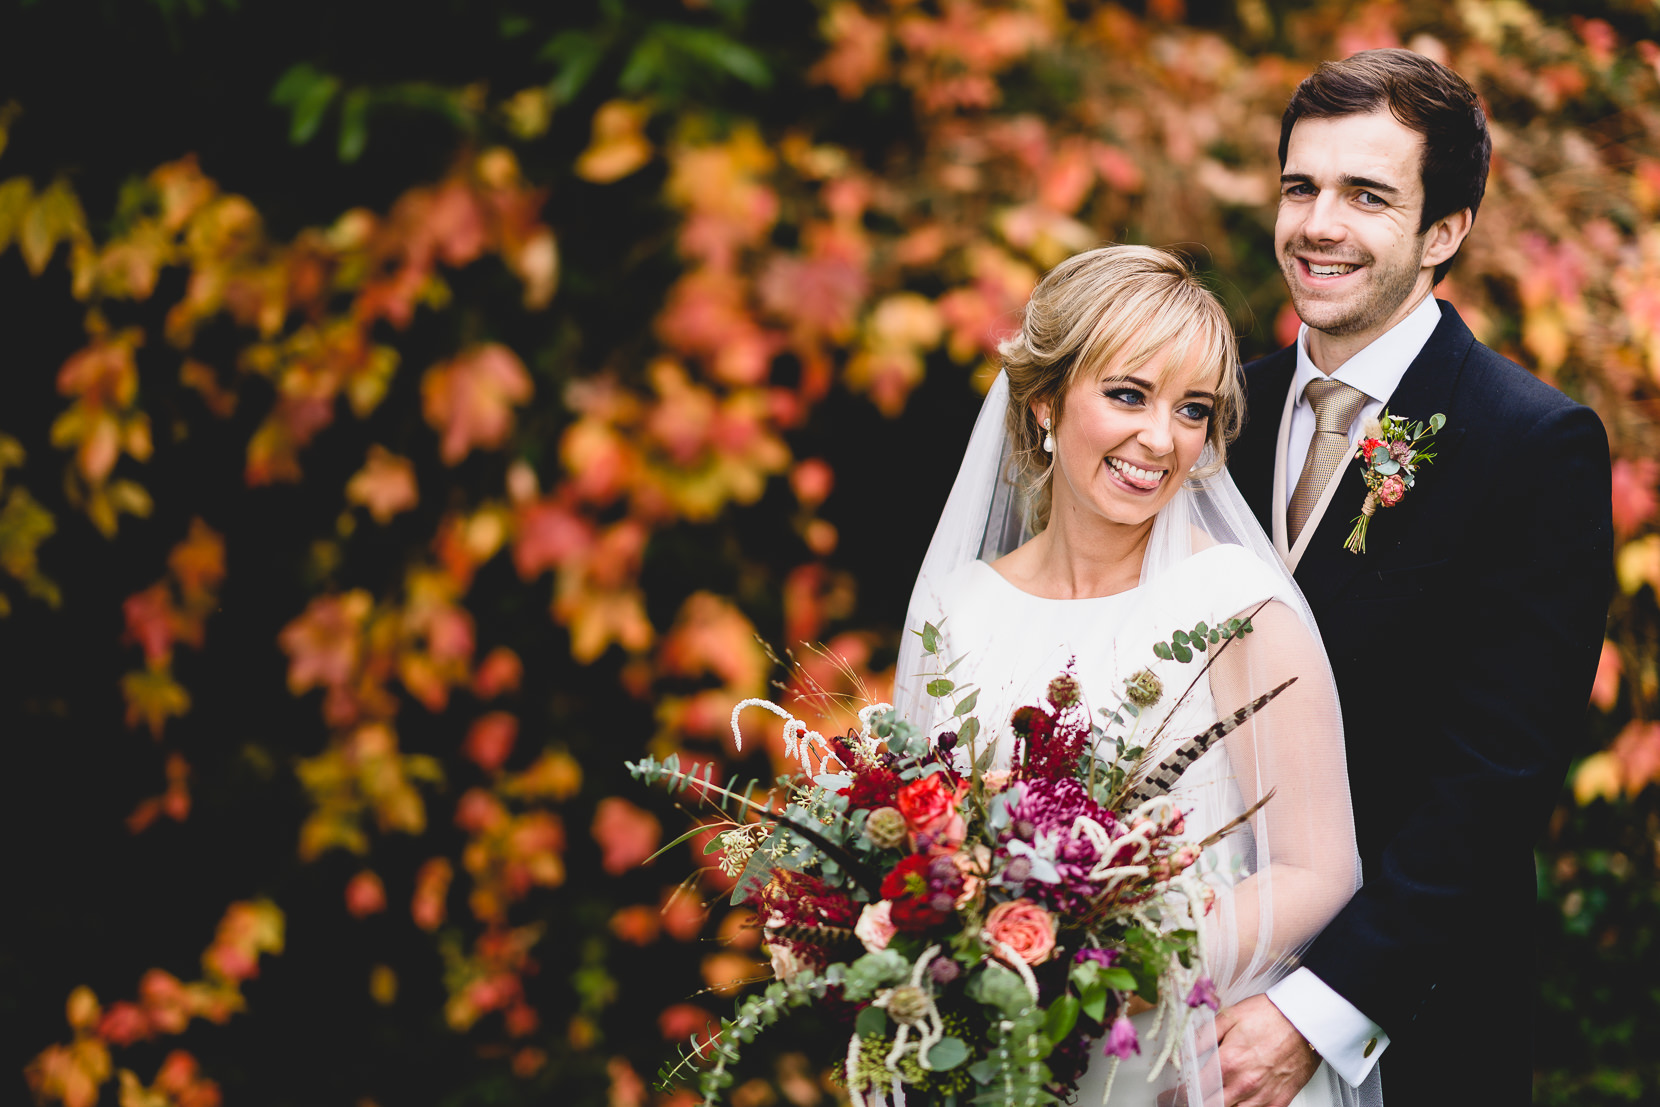 Autumn Wedding Photography in Norfolk with Catherine and Duncan cuddling in front of red leaves